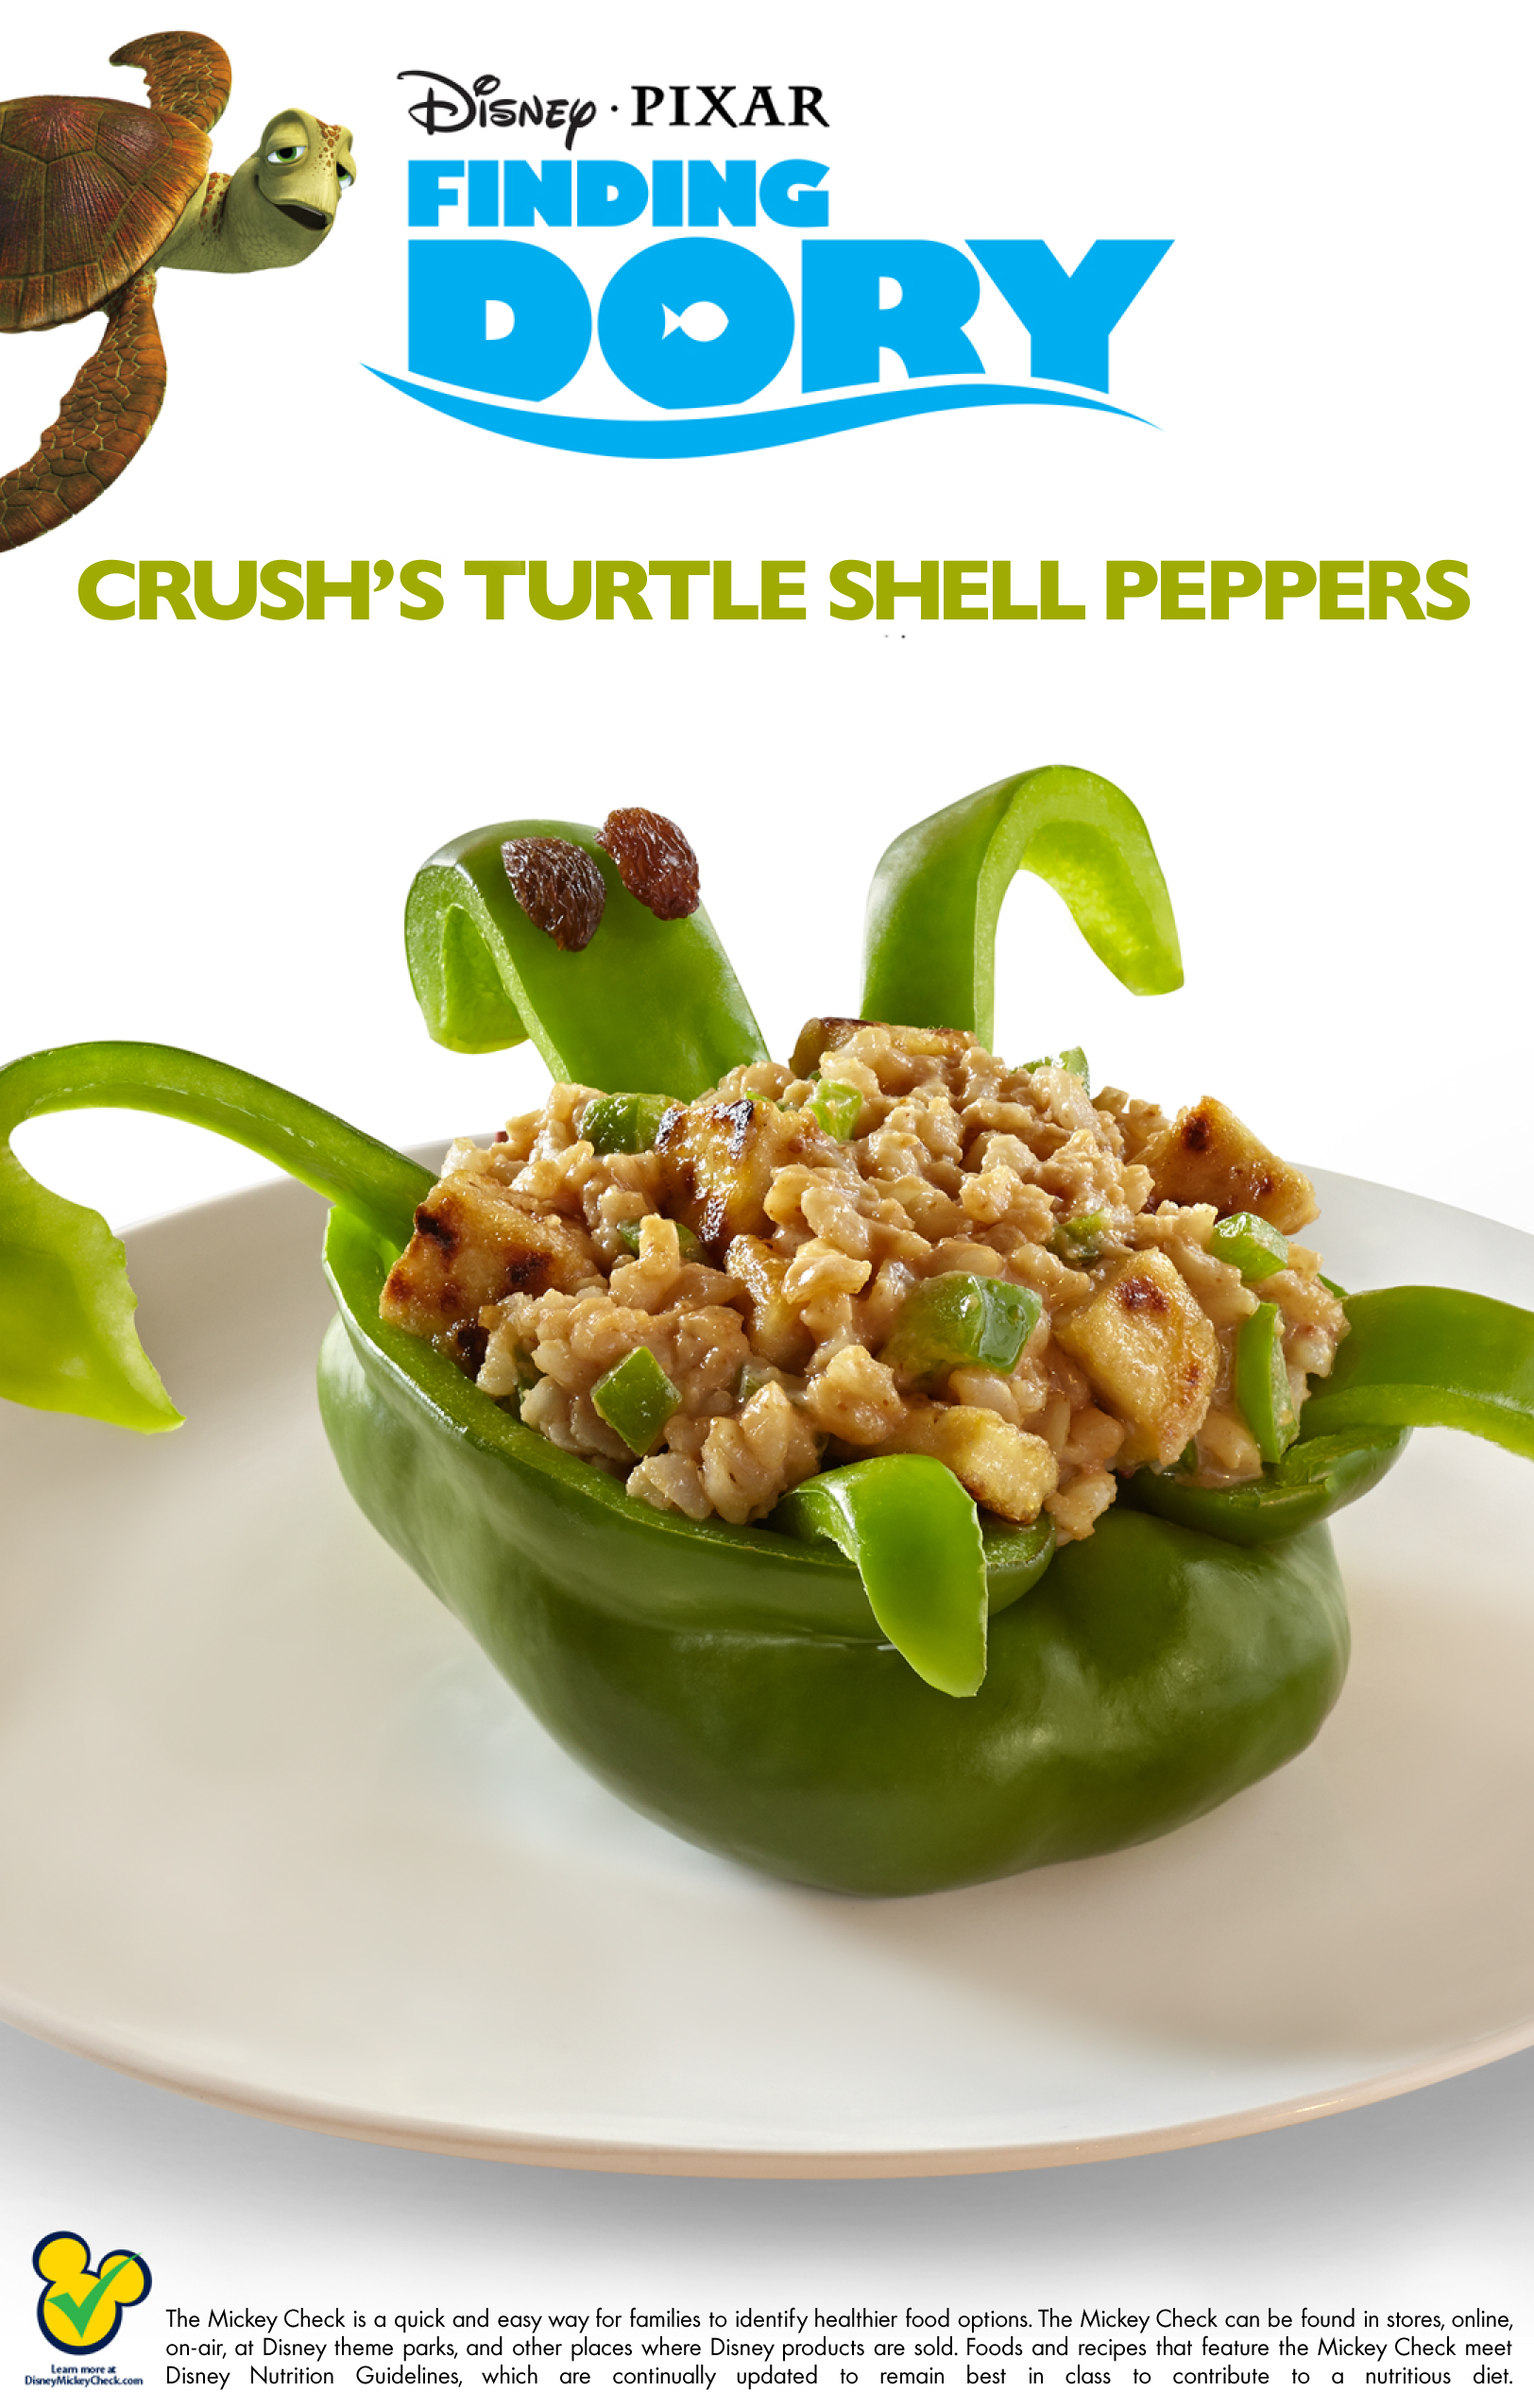 Recipe of the week archives 4 the love of family finding dory crushs turtle shell stuffed peppers recipe crush clip forumfinder Images